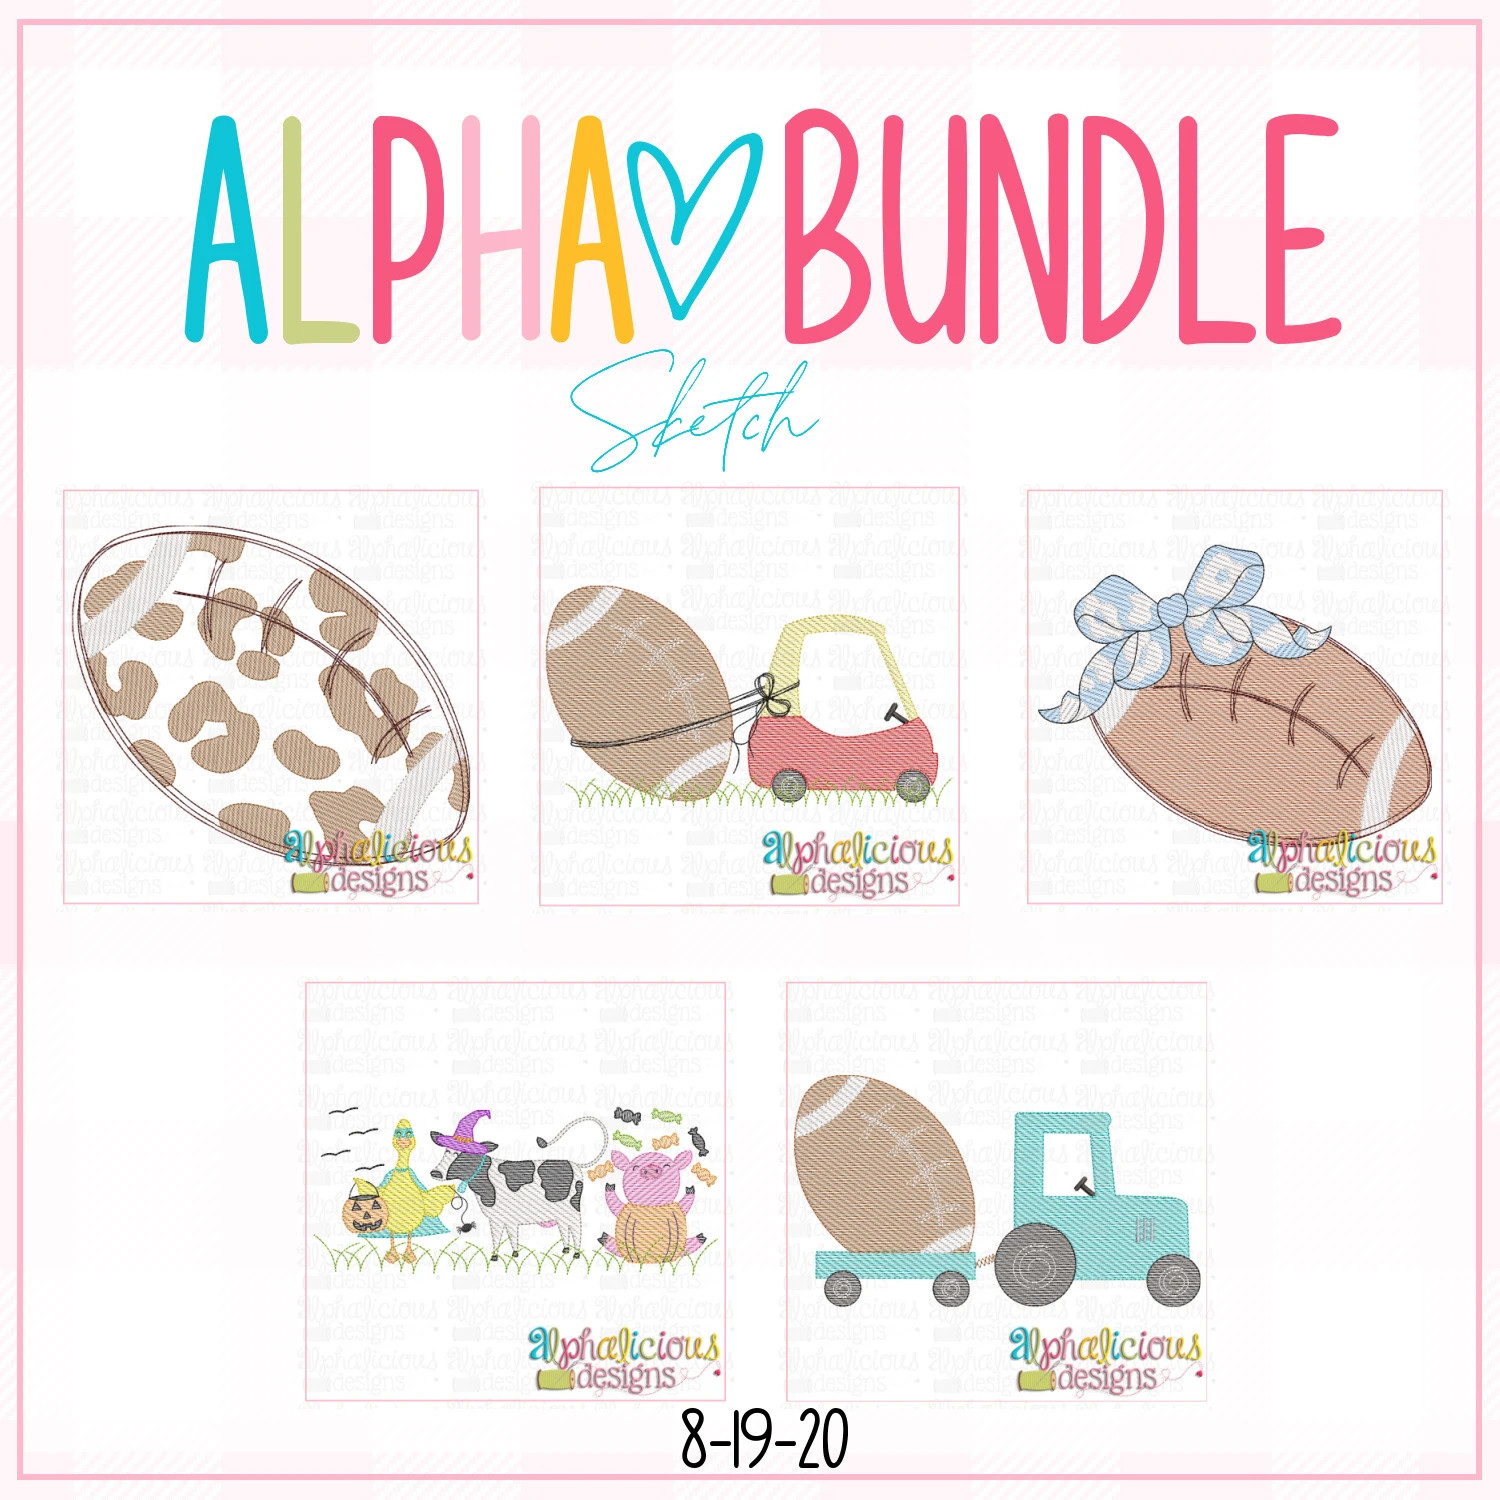 ALPHA BUNDLE-8/19/20 Release-Sketch